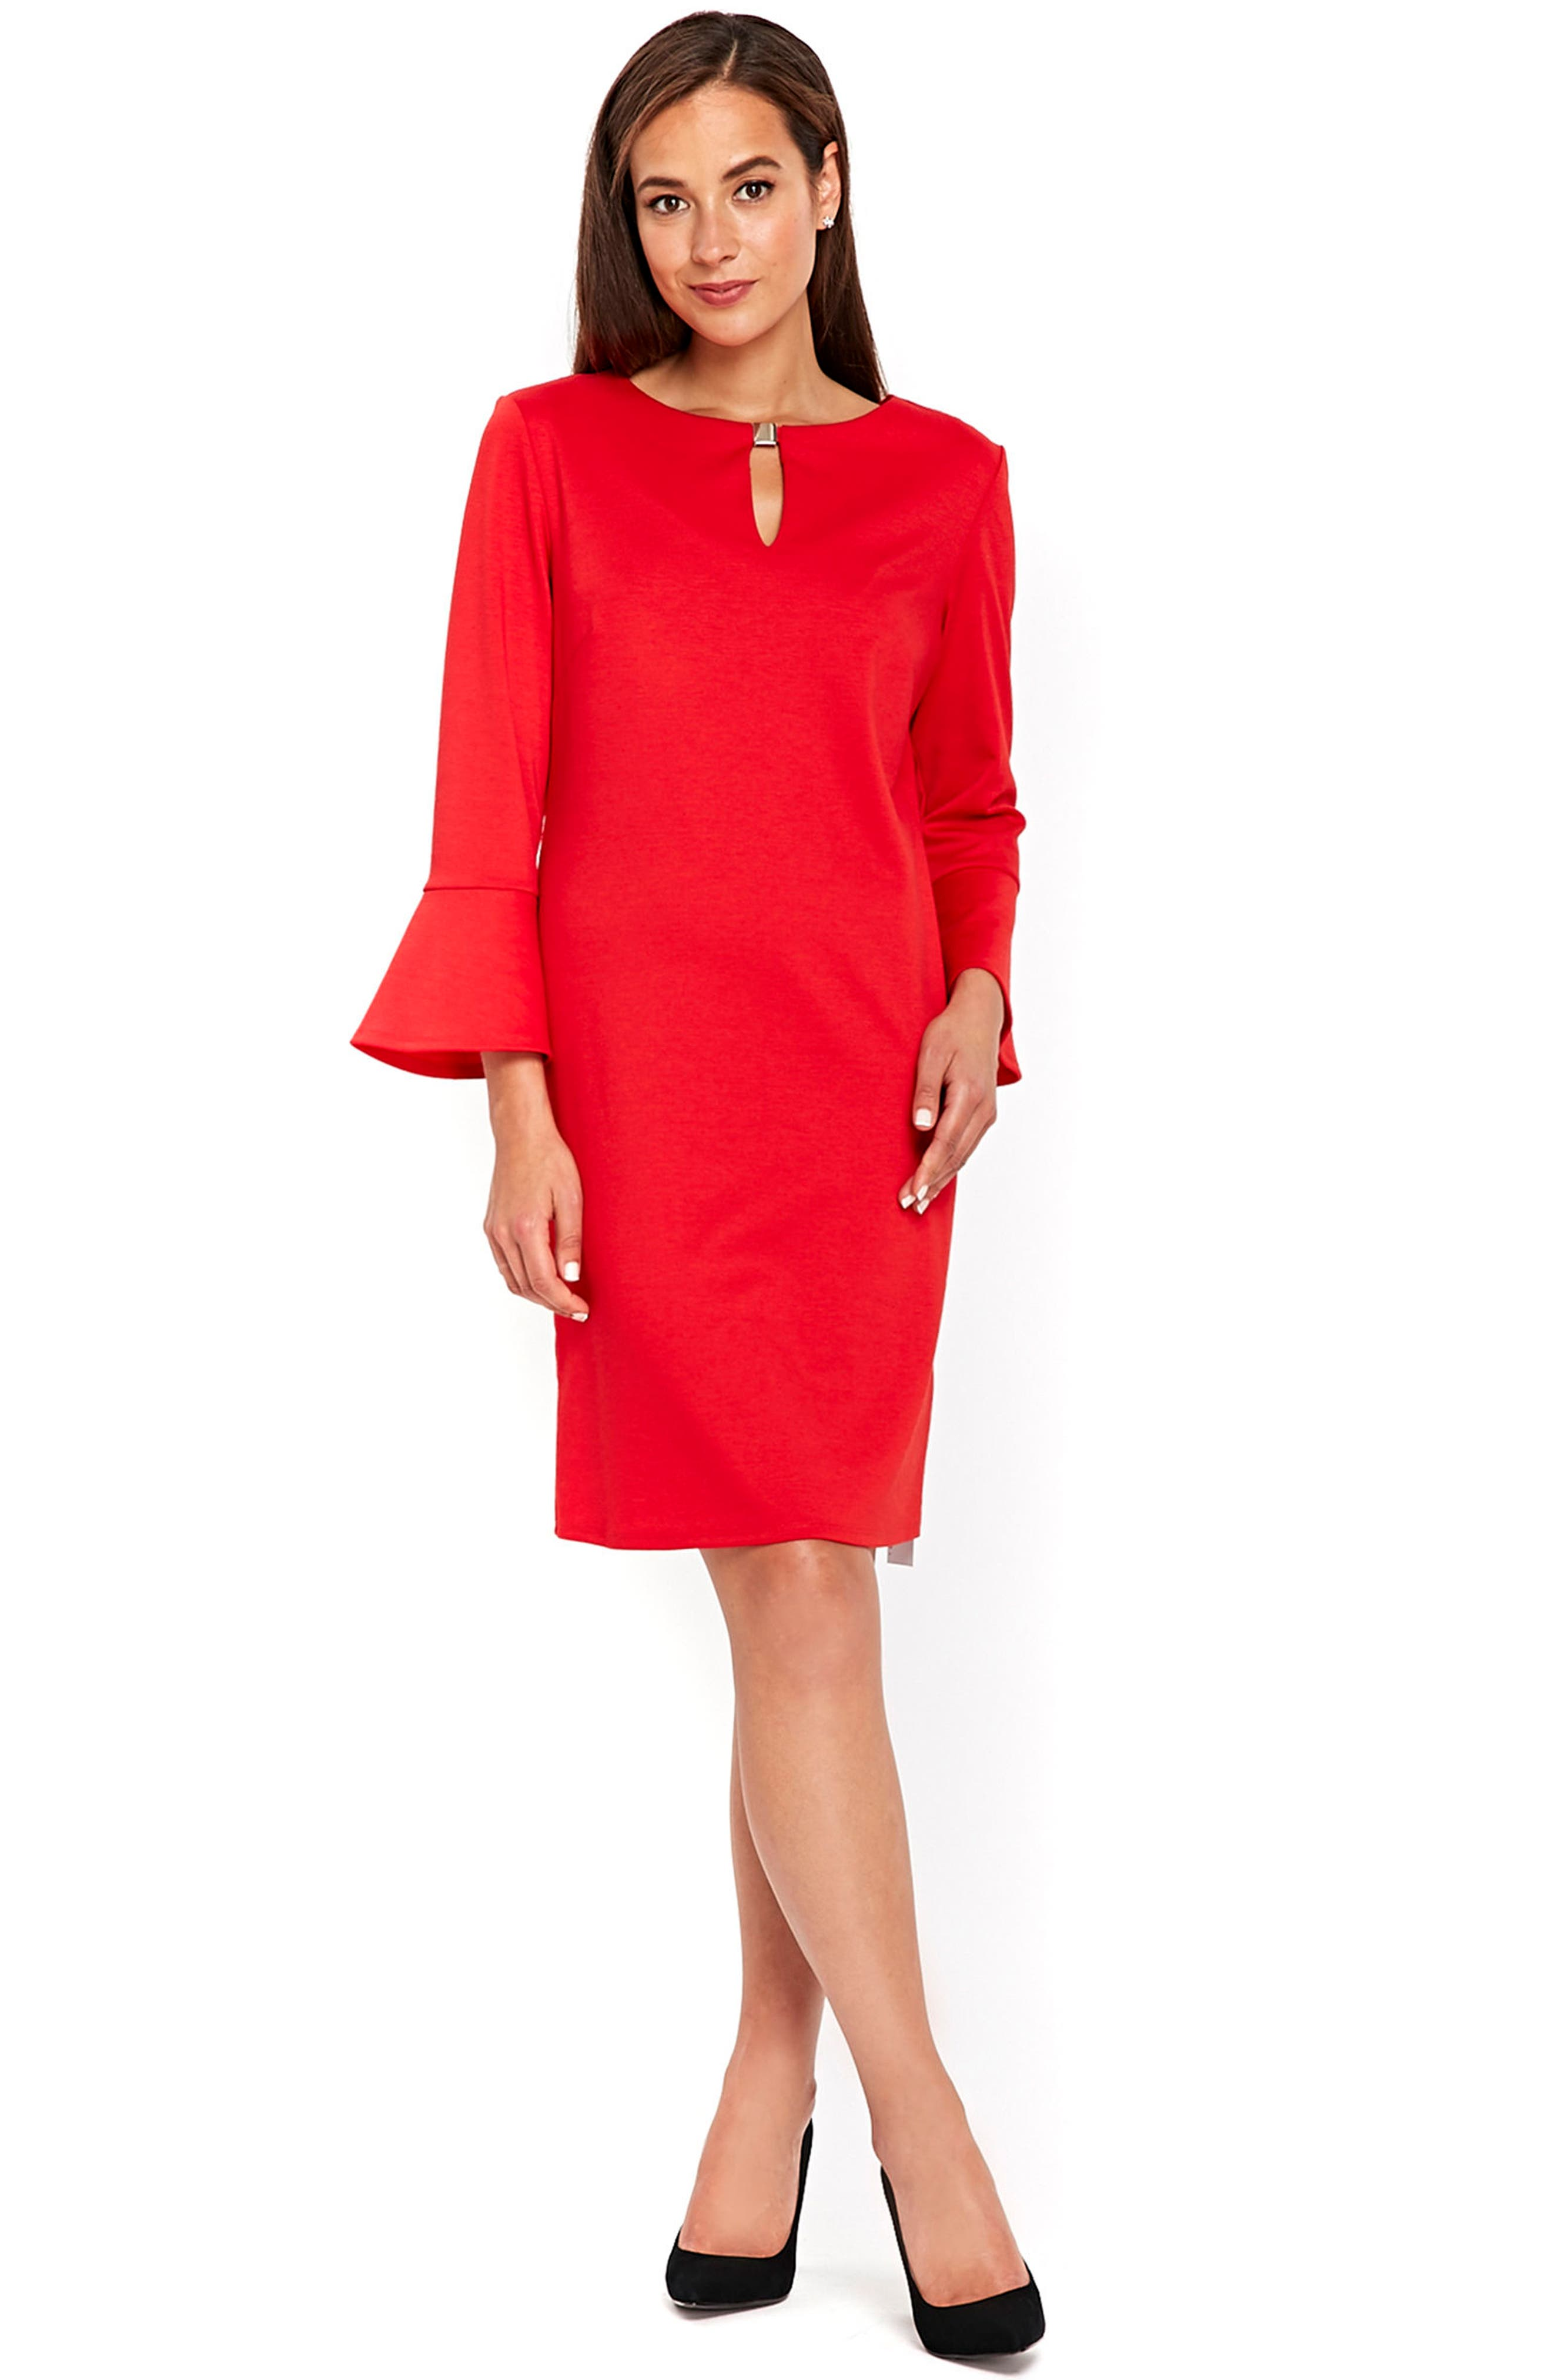 Bell Sleeve Keyhole Neck Dress,                             Alternate thumbnail 4, color,                             Red